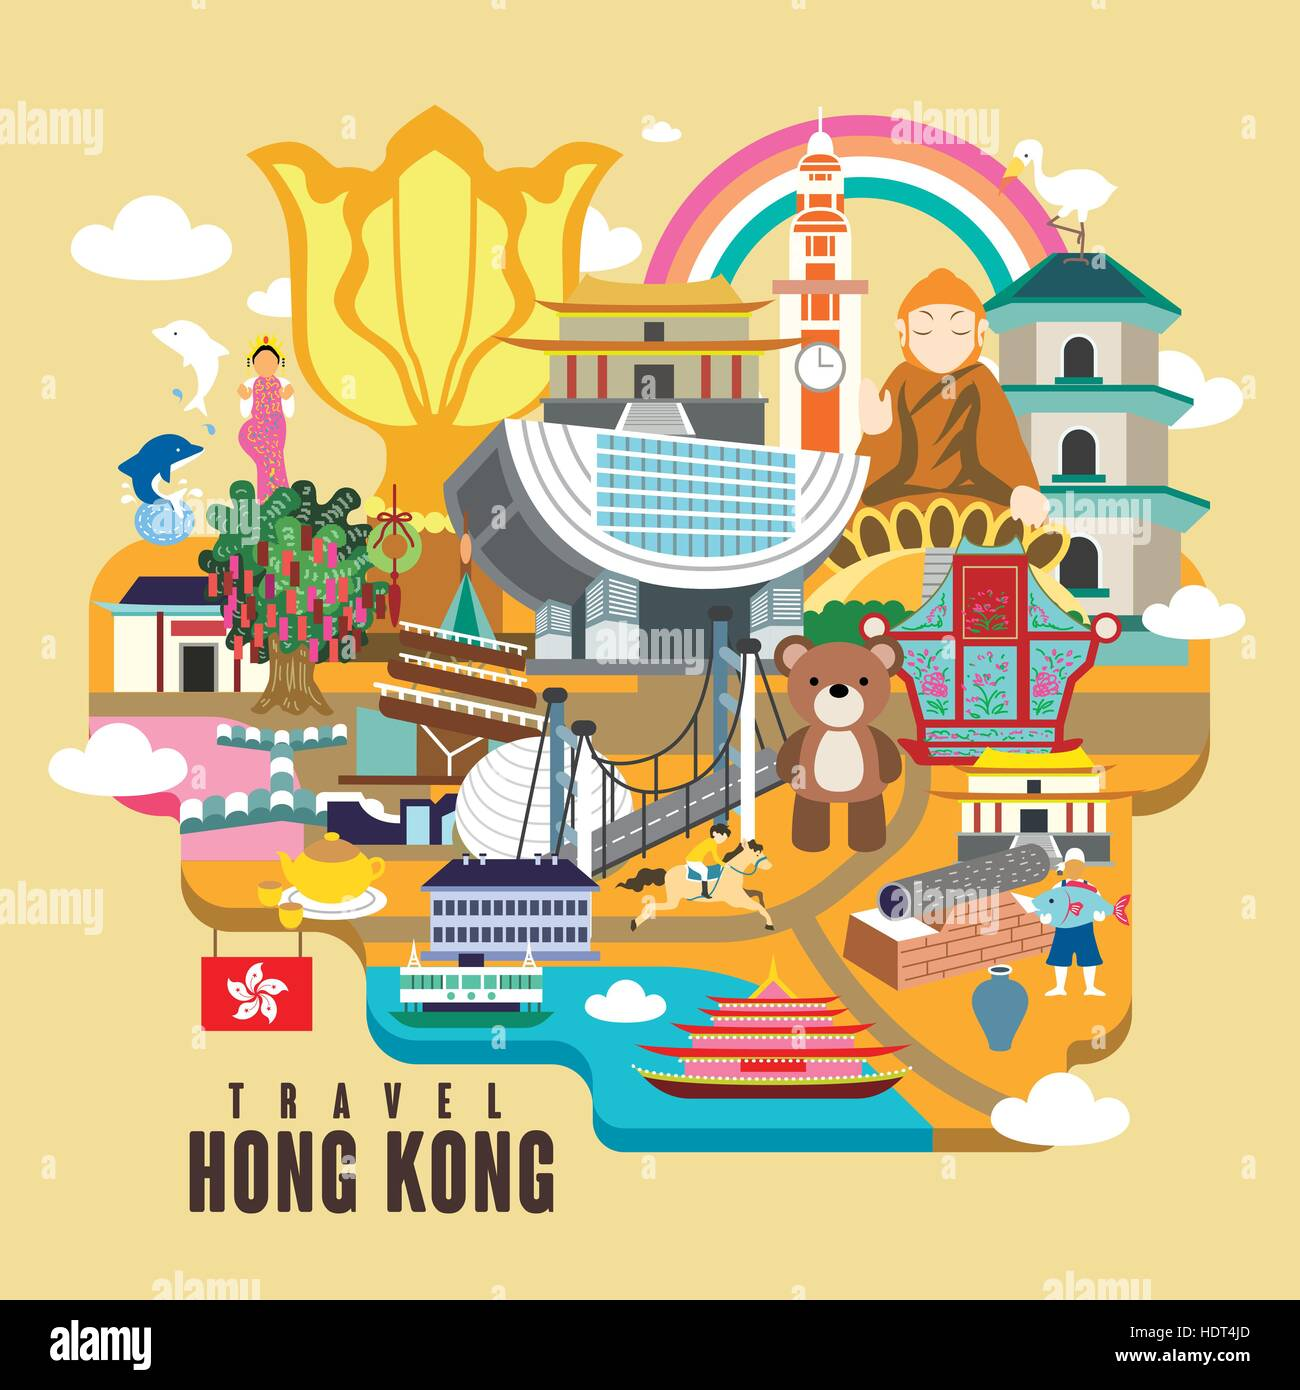 Poster design hong kong - Hong Kong Travel Poster Design With Attractions In Flat Style